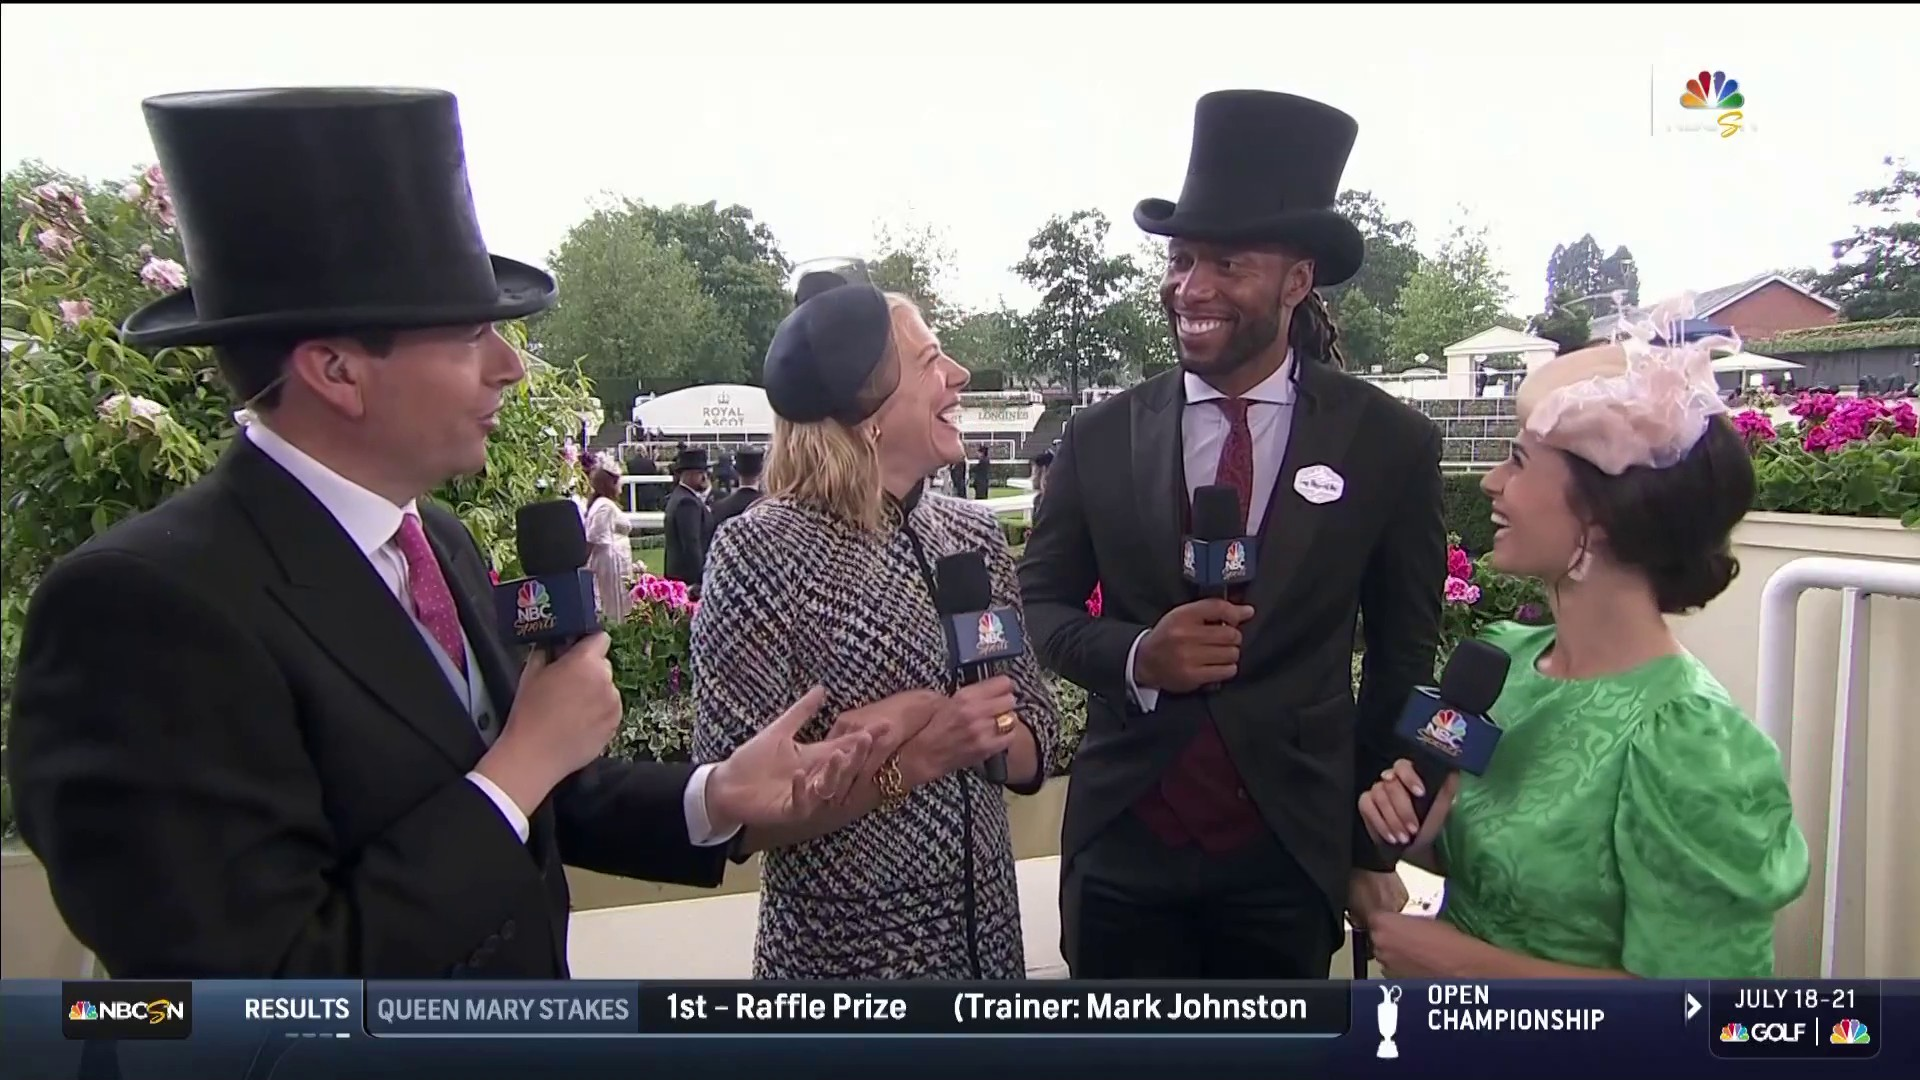 2019 Royal Ascot: Cardinals' Larry Fitzgerald watches Crystal Ocean's